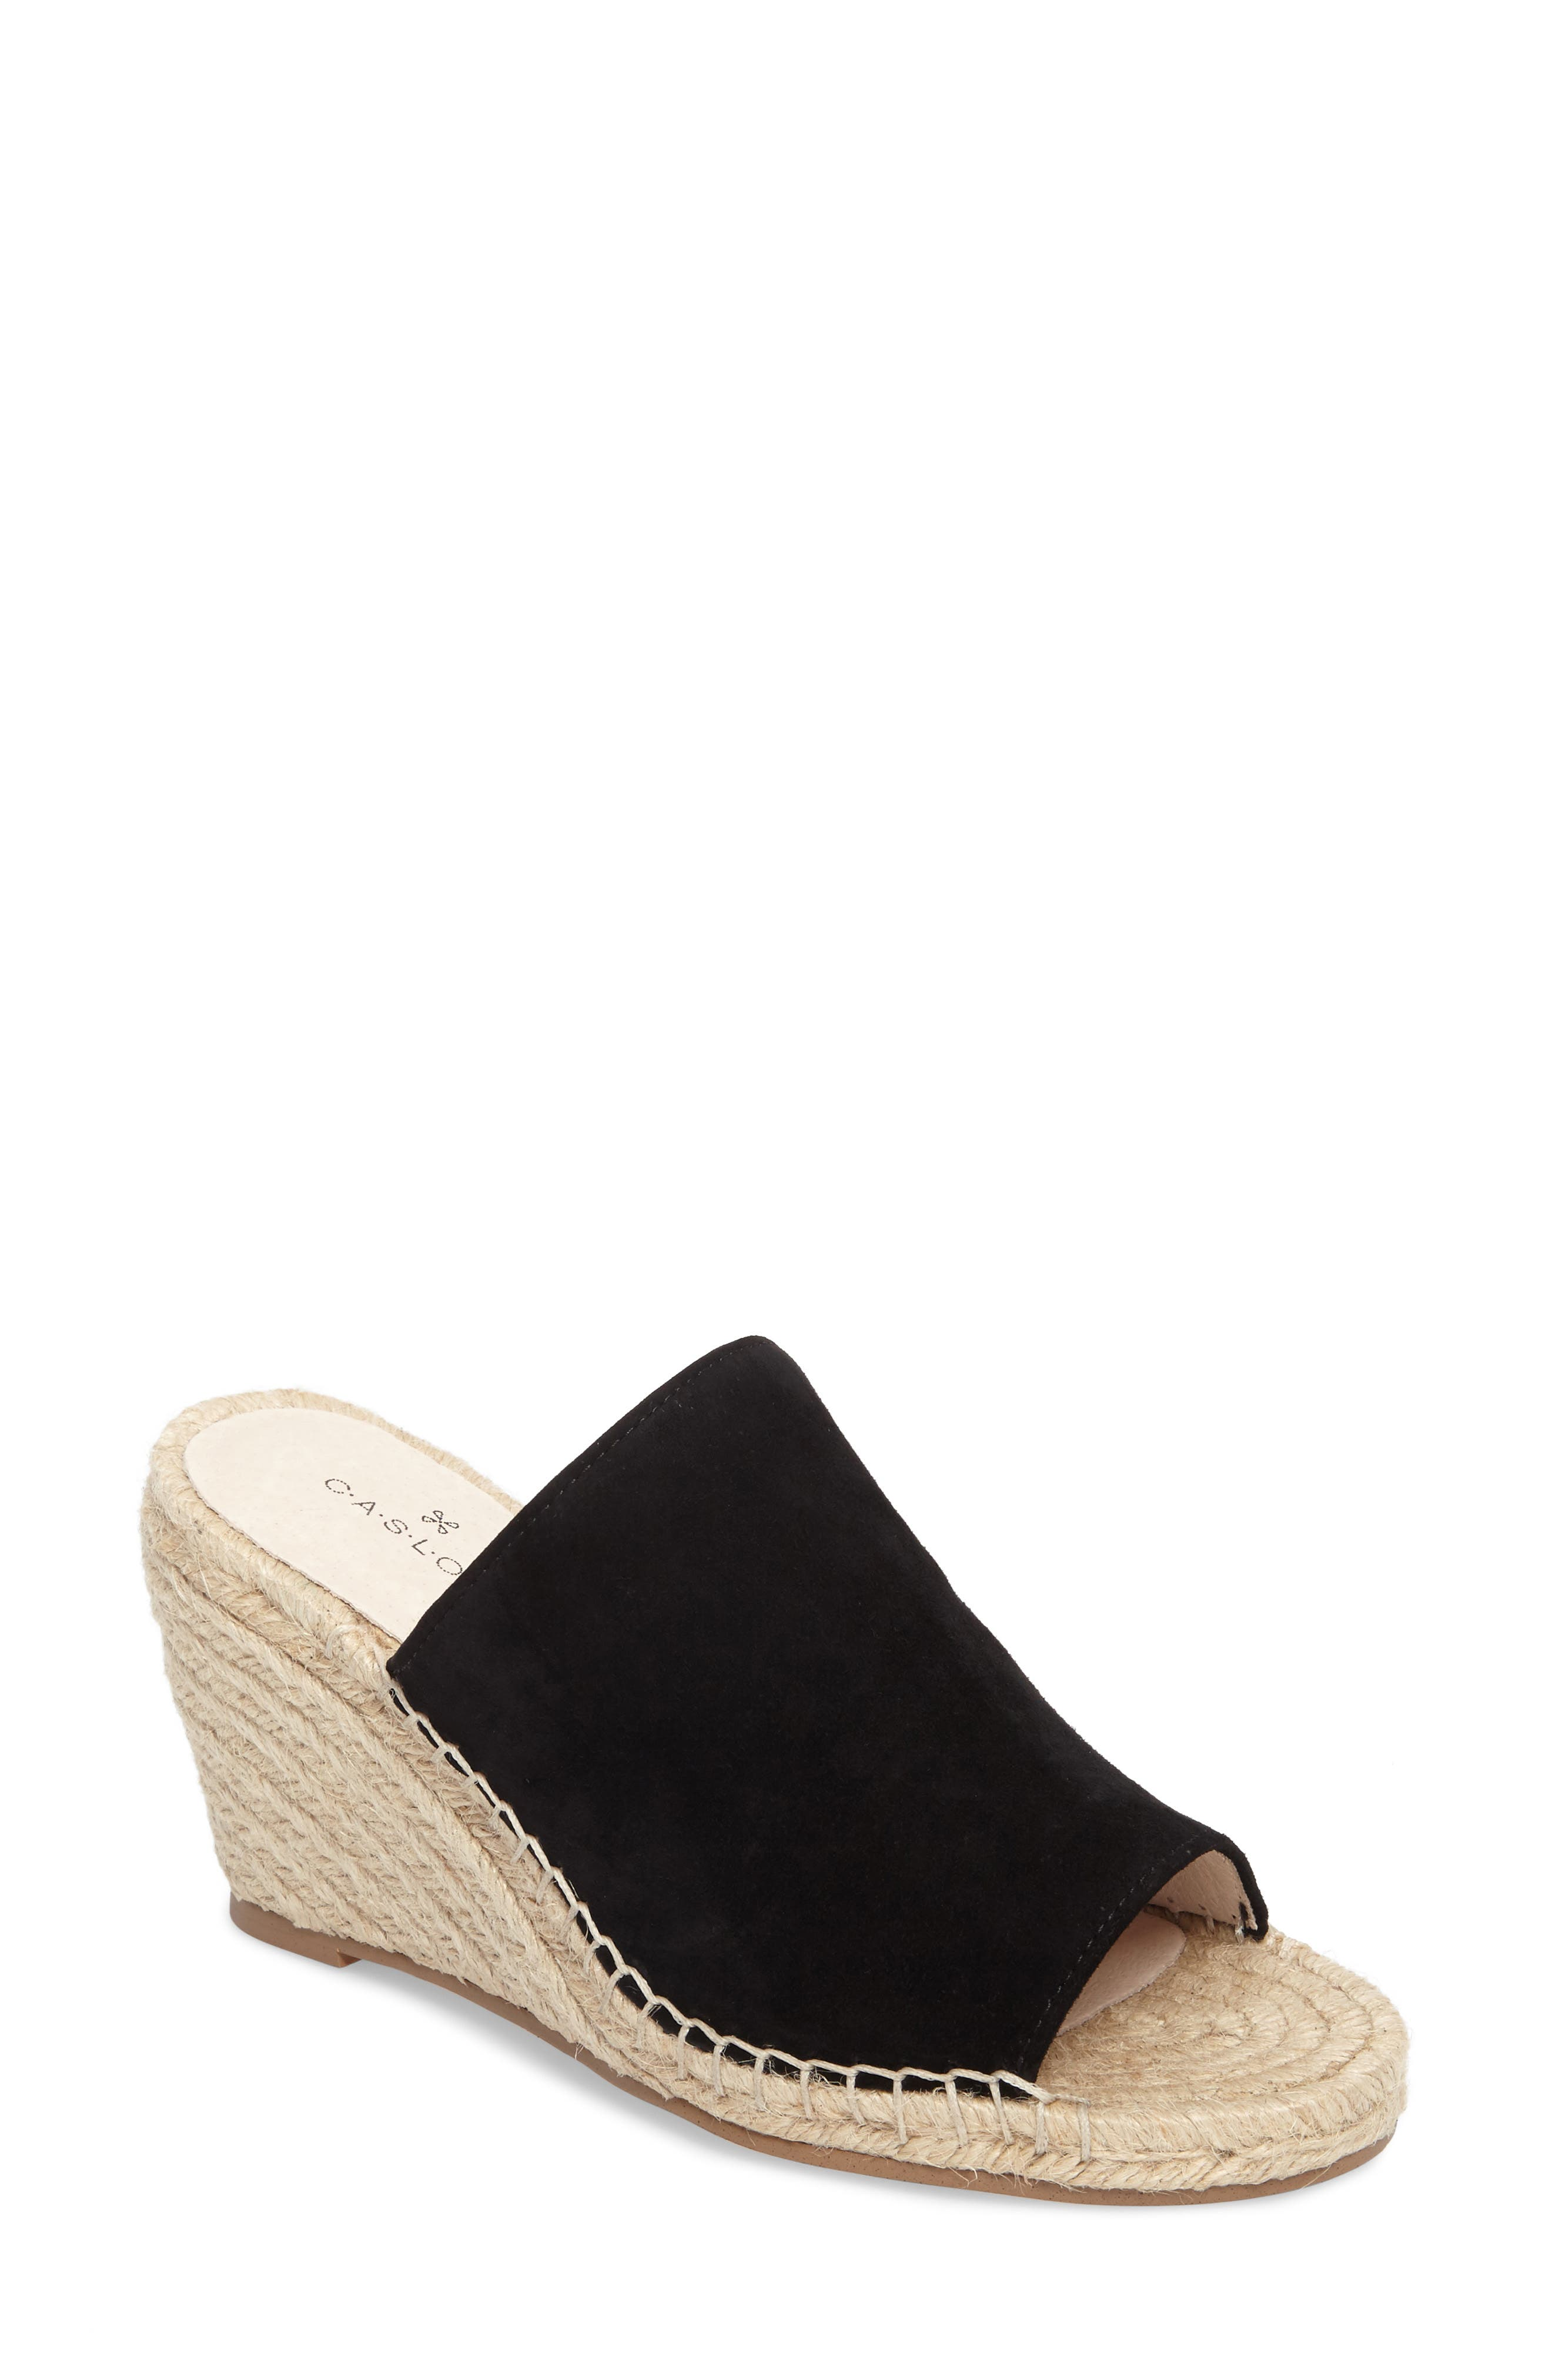 Sally Wedge Sandal,                             Main thumbnail 1, color,                             BLACK SUEDE